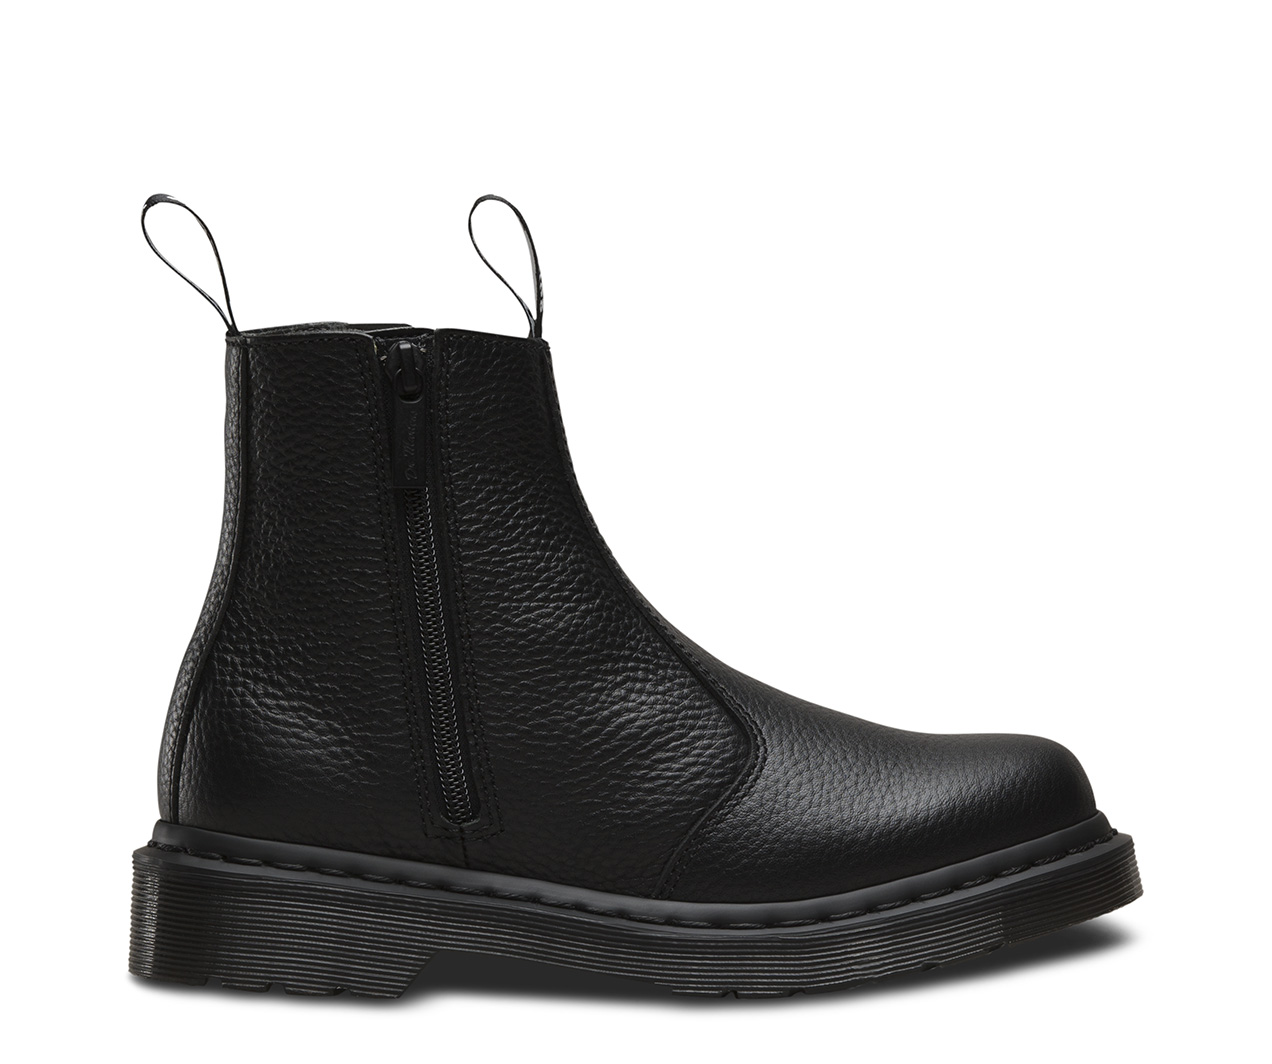 2976 W Zip Aunt Sally 2976 Chelsea Boots The Official